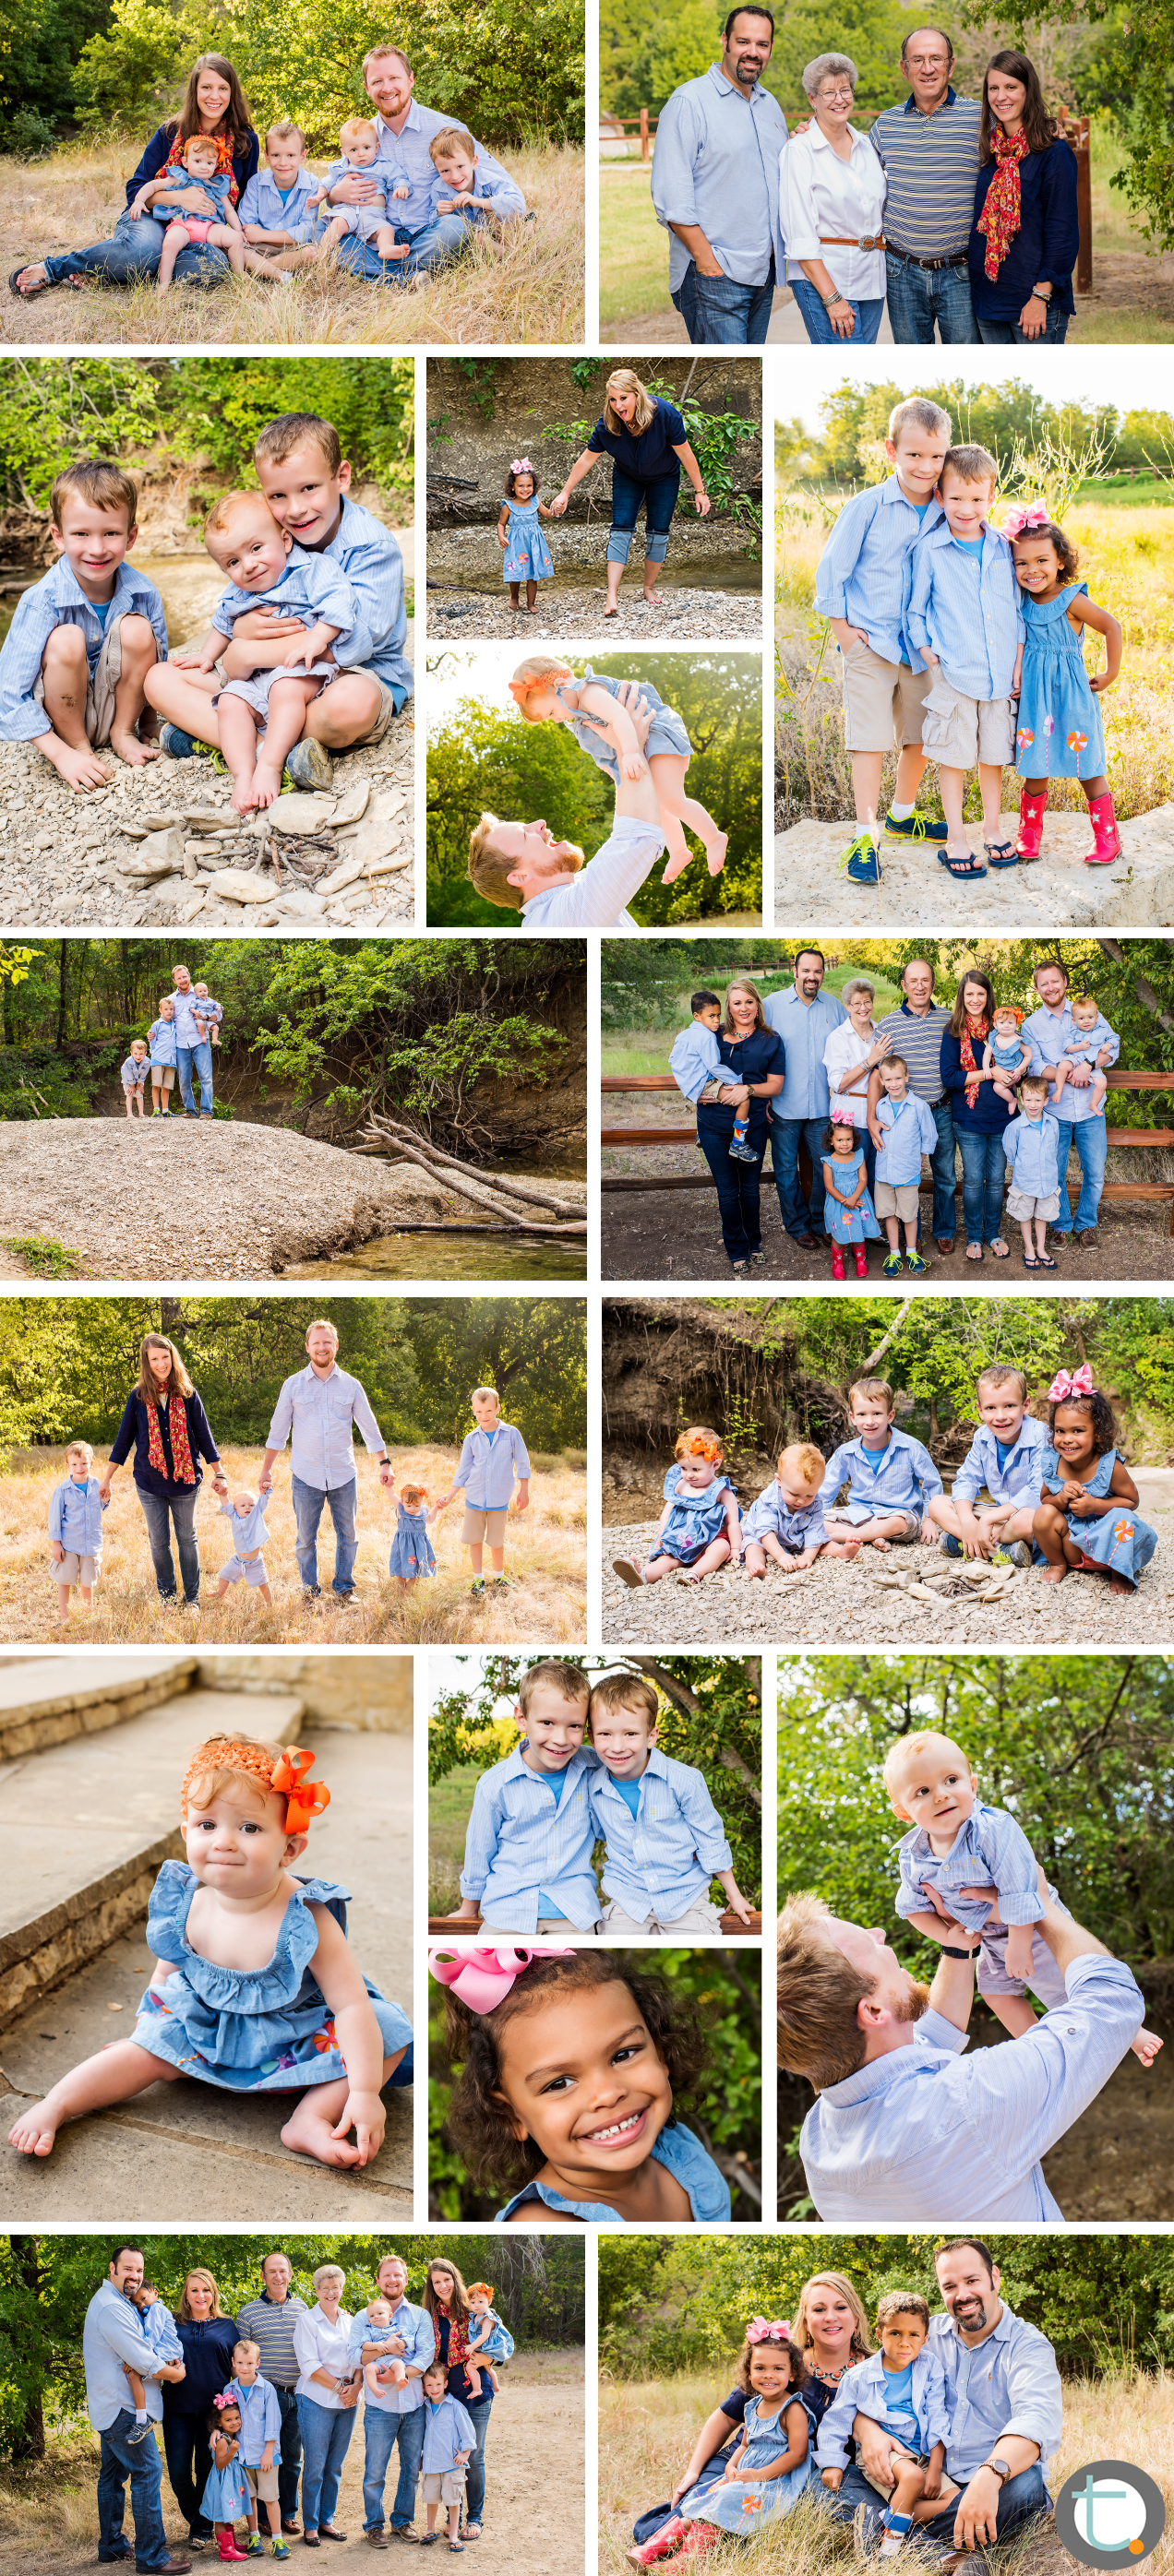 family_largegroup_extended_arborhillsnaturepreserve_cousins_twins_siblings_grandparents_tracyallynphotography